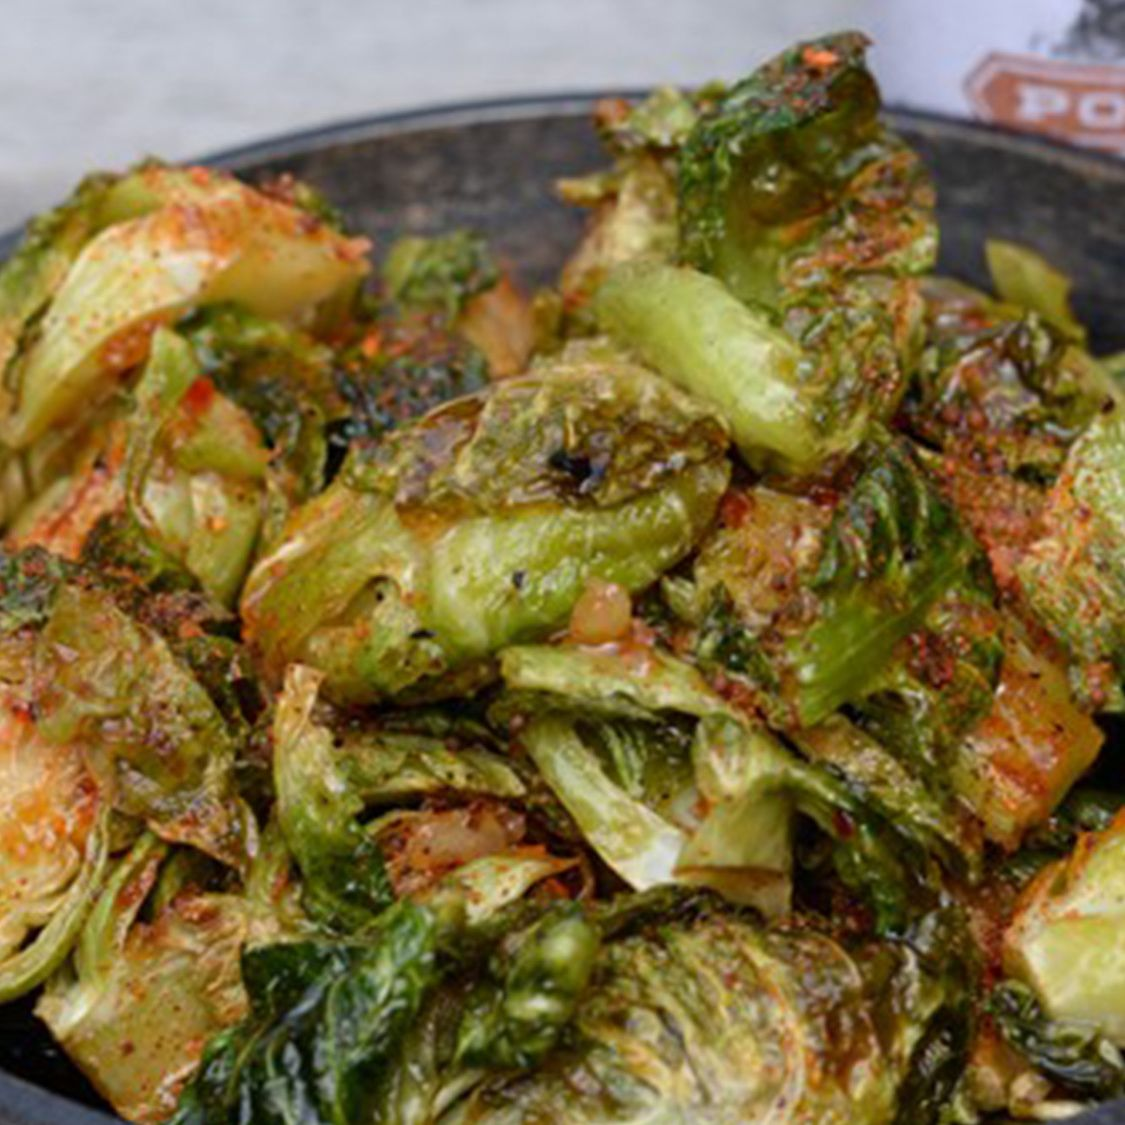 stubbs_roasted_brussels_sprouts.jpg